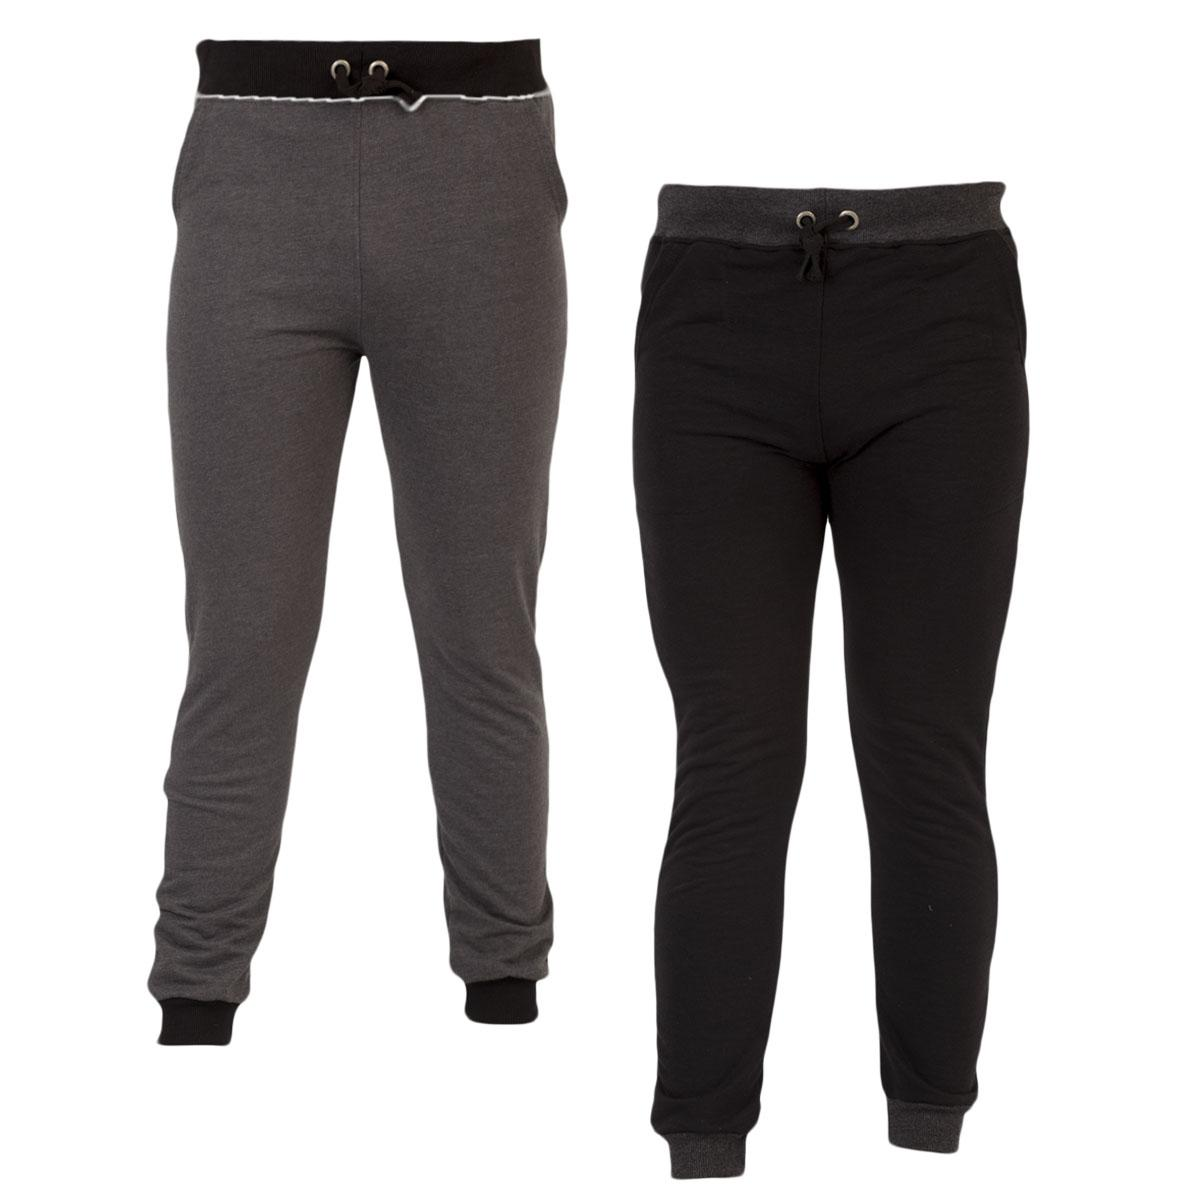 e25156fd179d8 Men s Sports Clothing   Tracksuits Online in Pakistan. 3036 items found in  Clothing. Daraz Select Pack of 2 French Terry Trouser